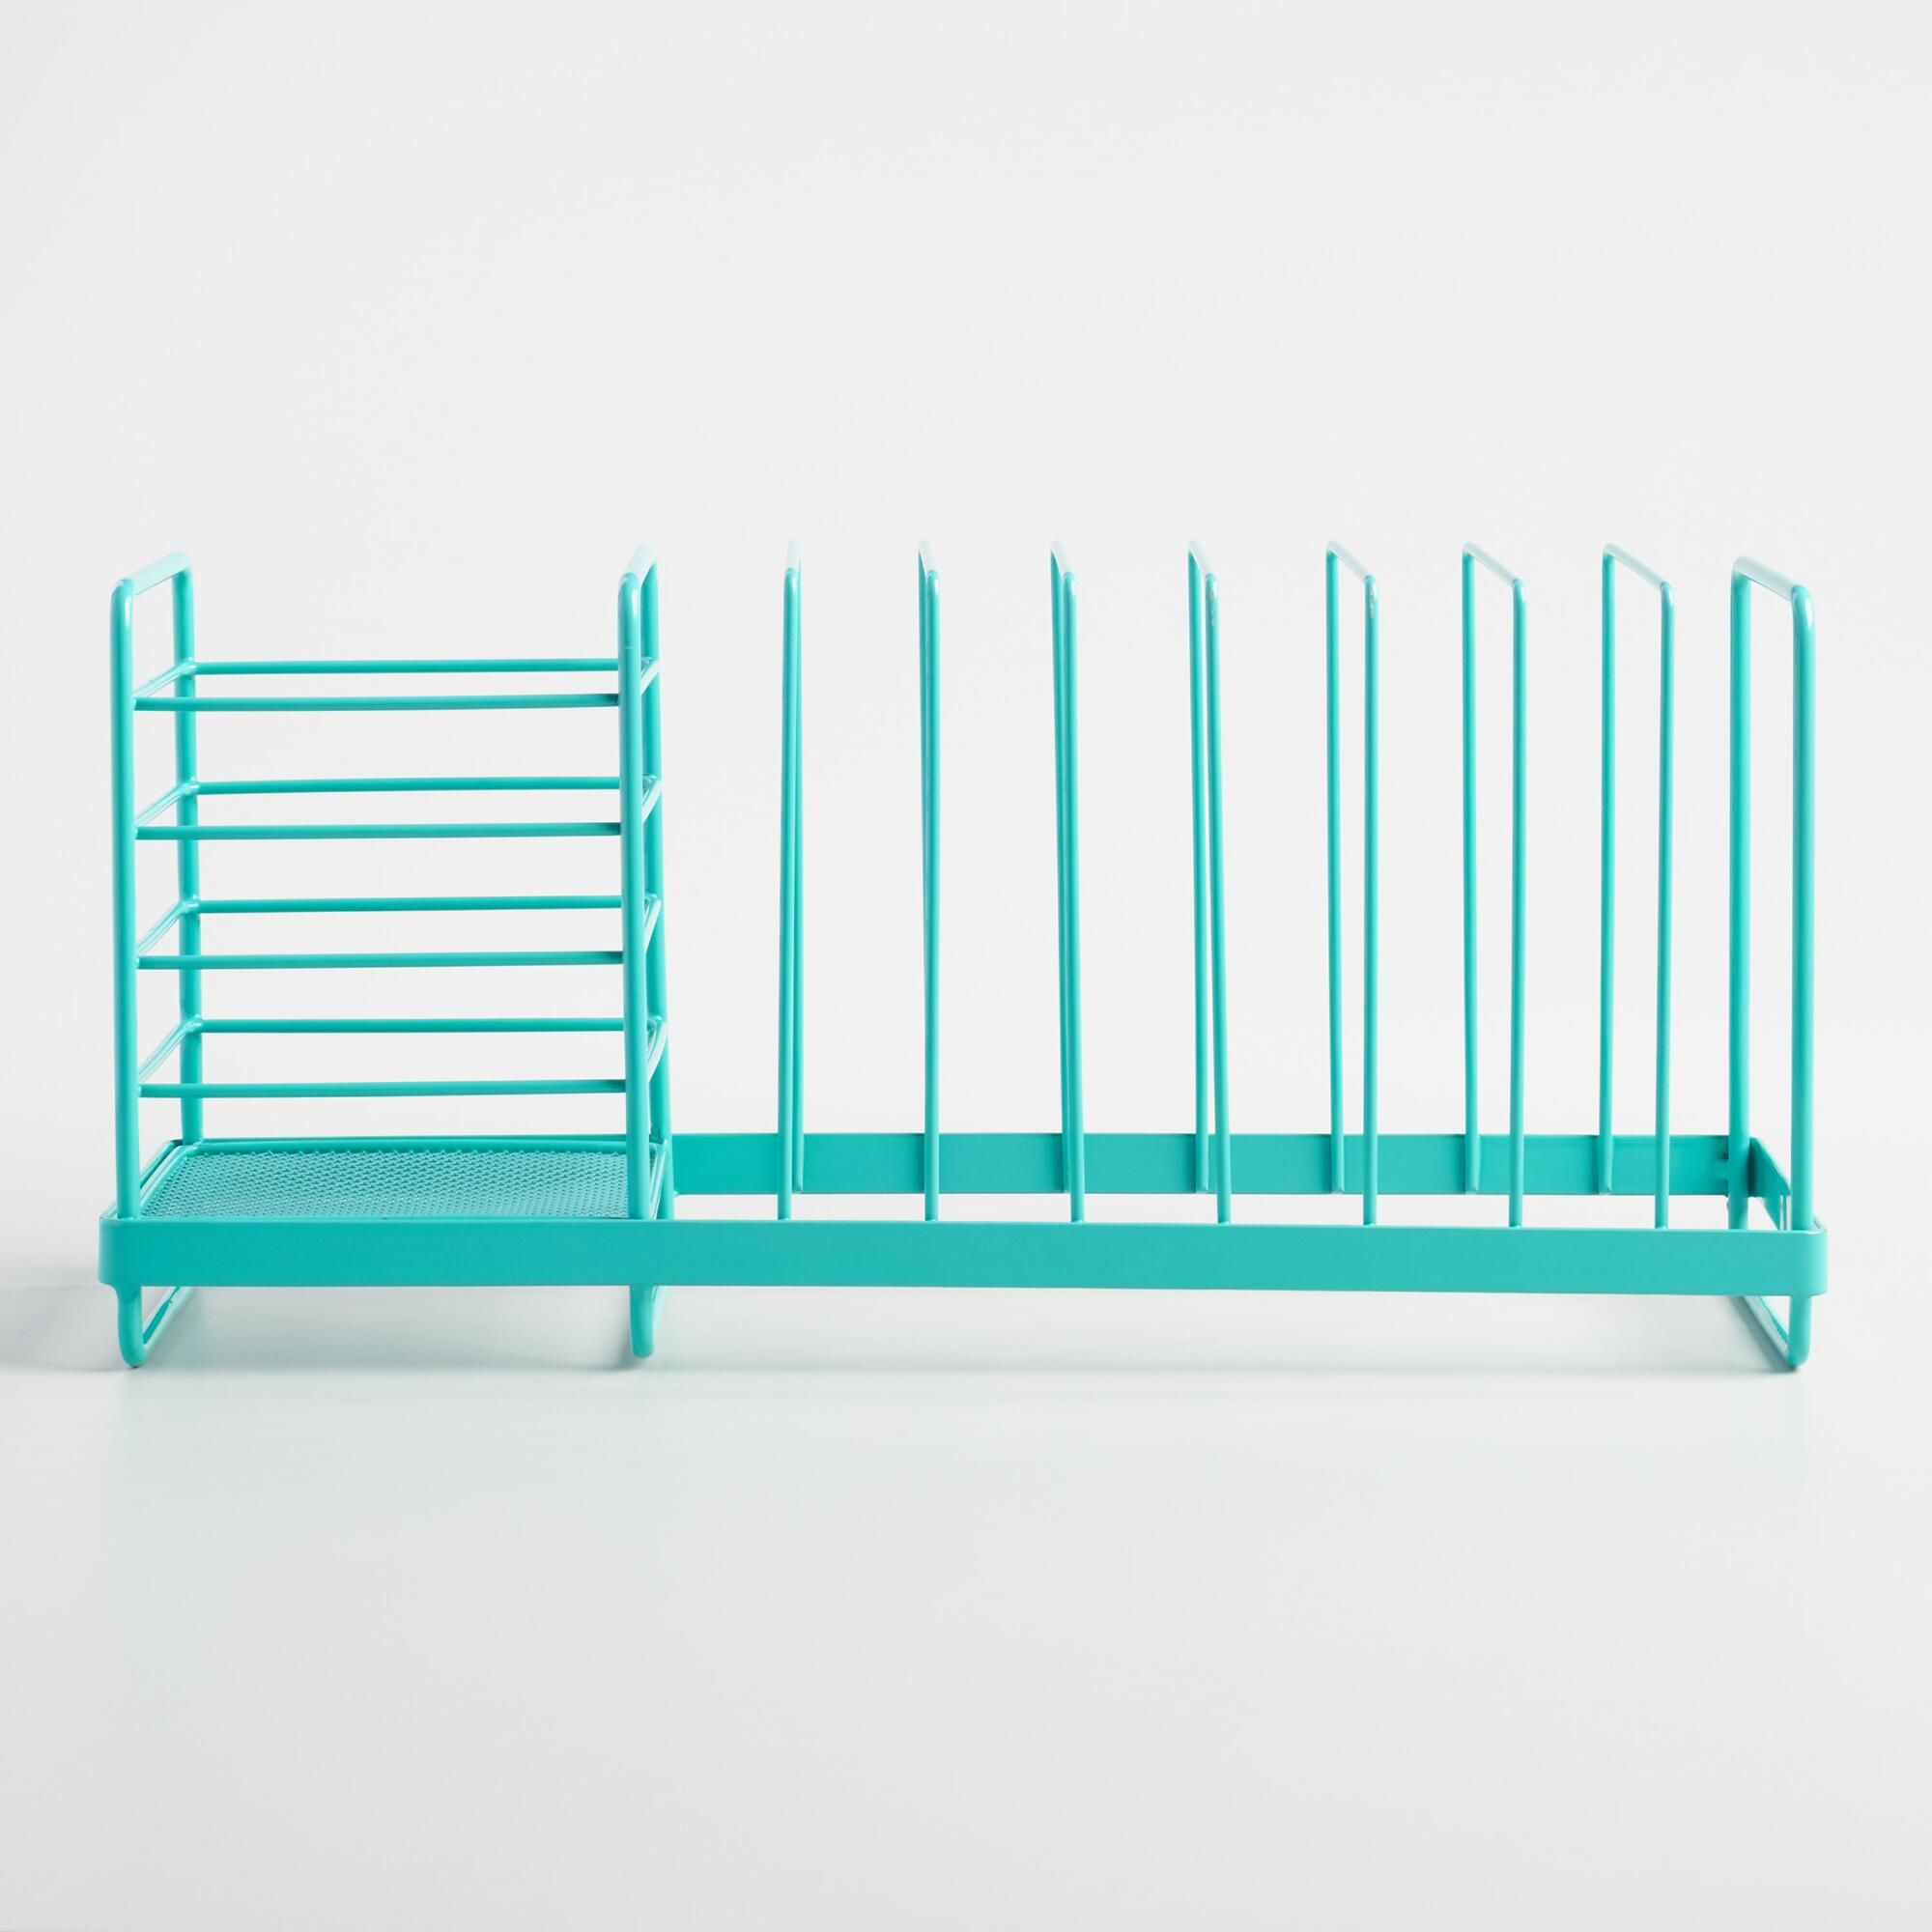 Aqua Compact Dish Rack   Small space kitchen, Dish drainers and ...